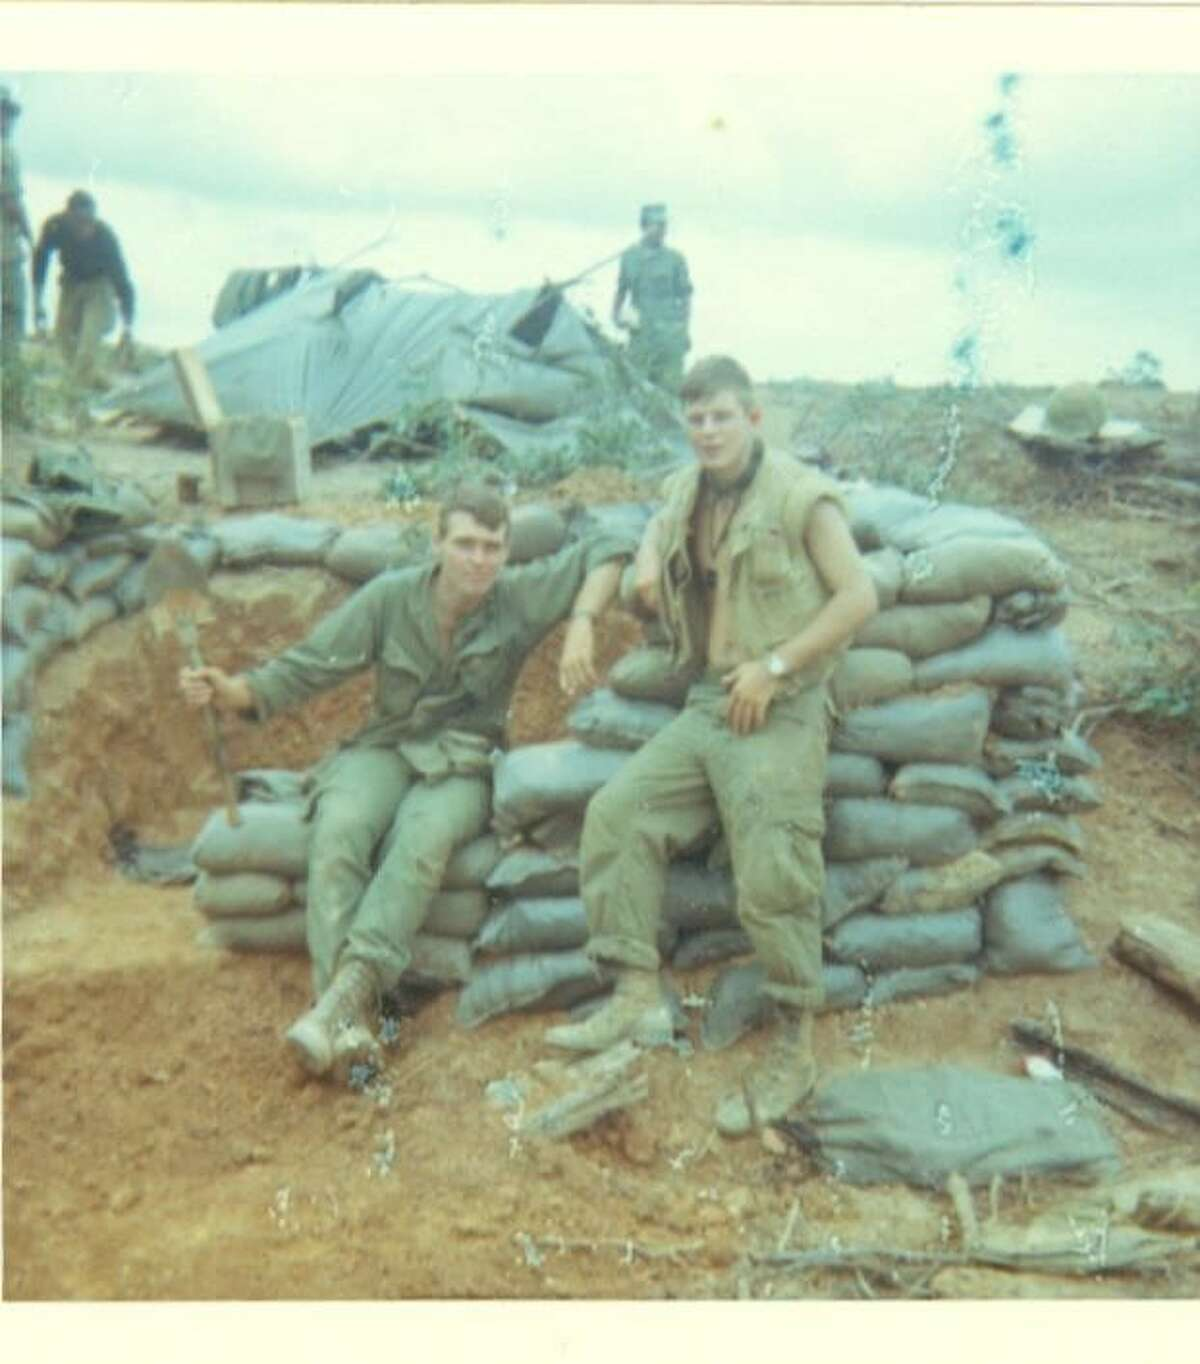 Terry Kindlon, left, in the Quang Tri Province, Vietnam in 1967. (Courtesy of Terry Kindlon)